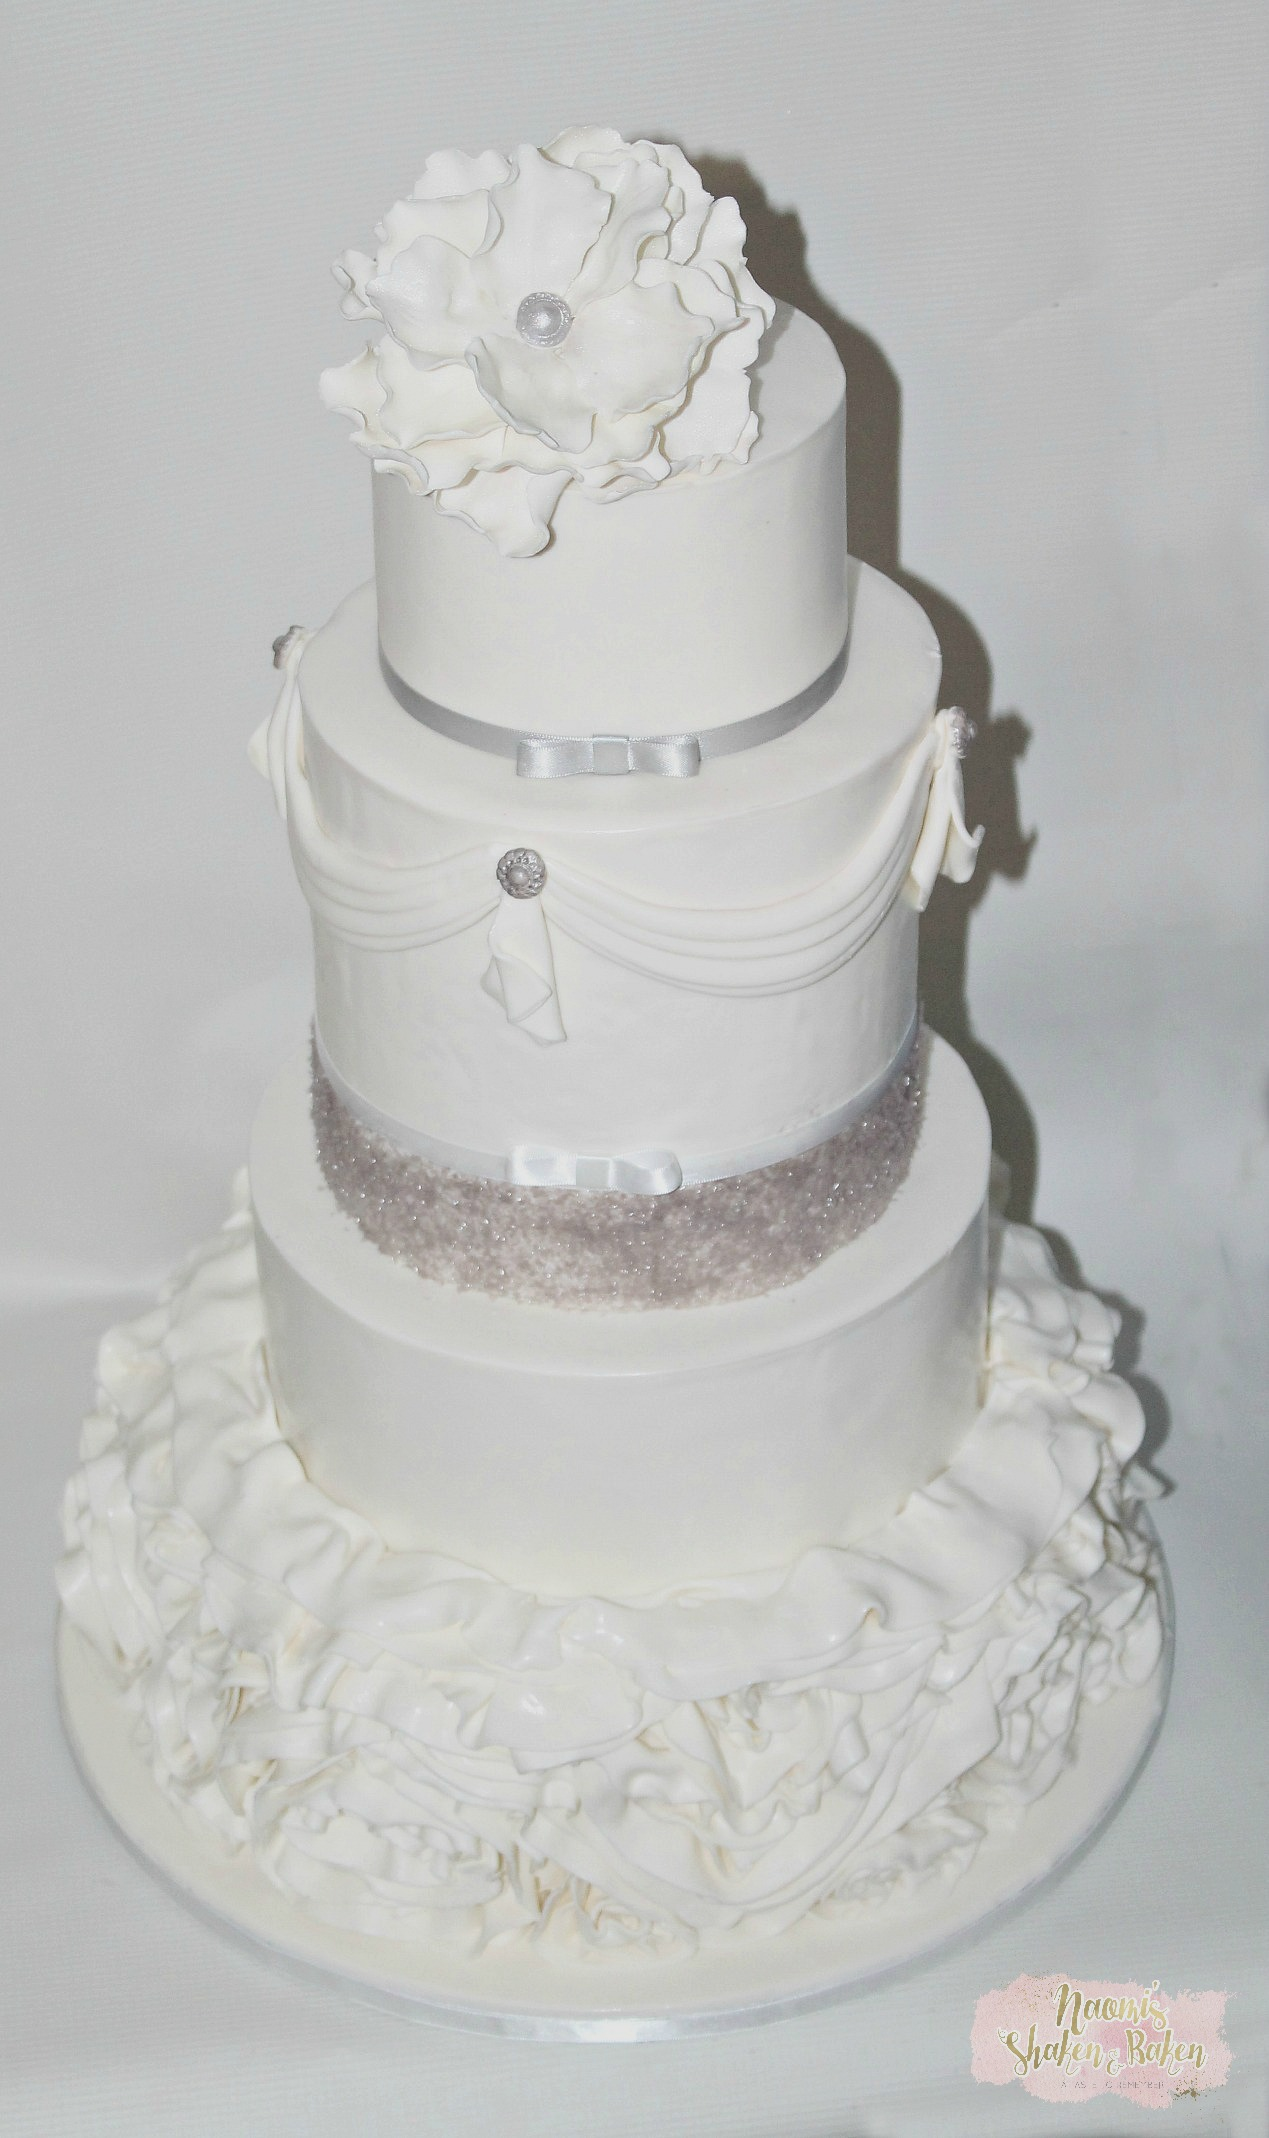 Grand ruffle wedding cake